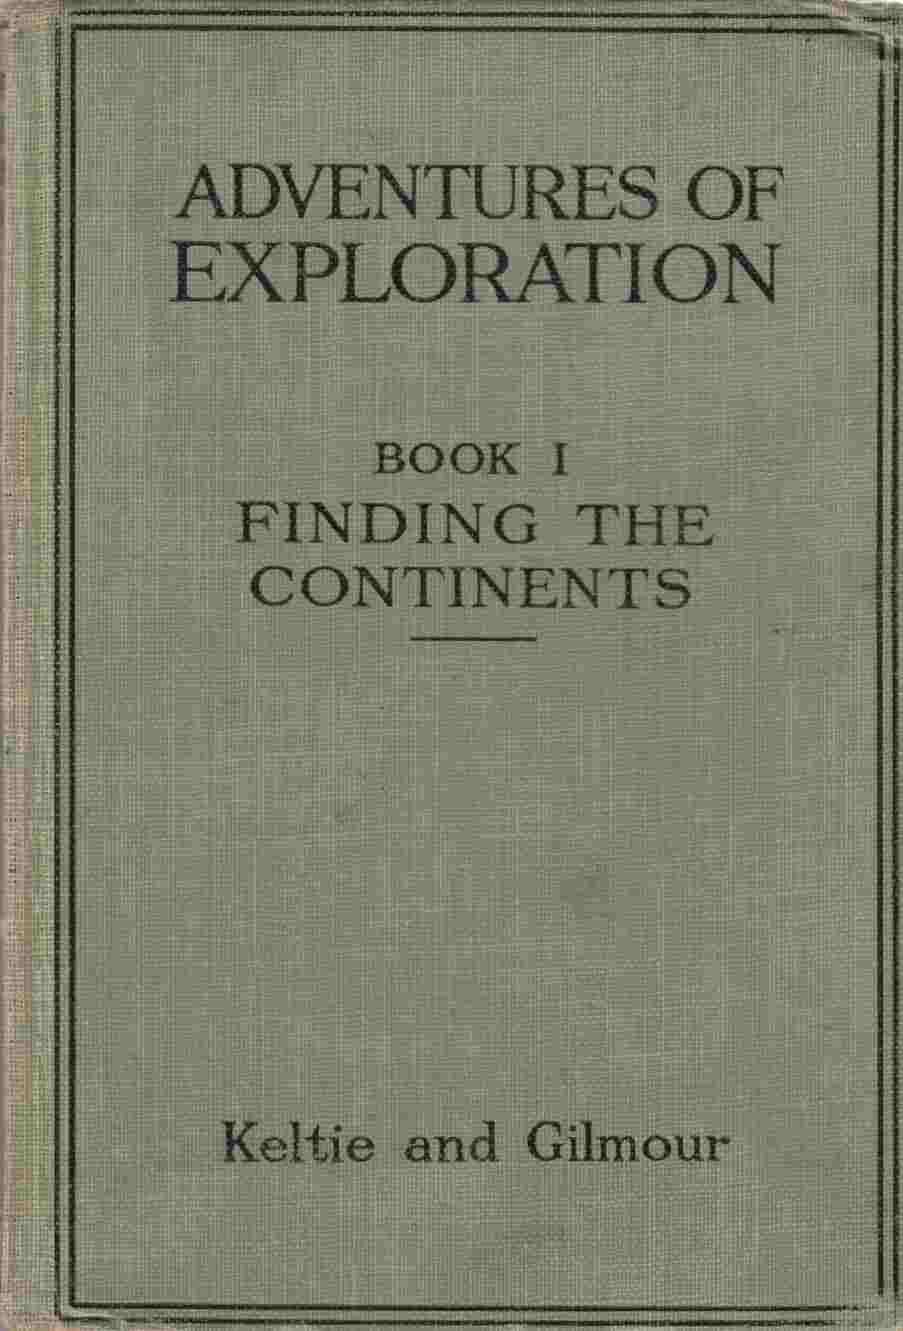 Image for Adventures of Exploration Book I: Finding the Continents